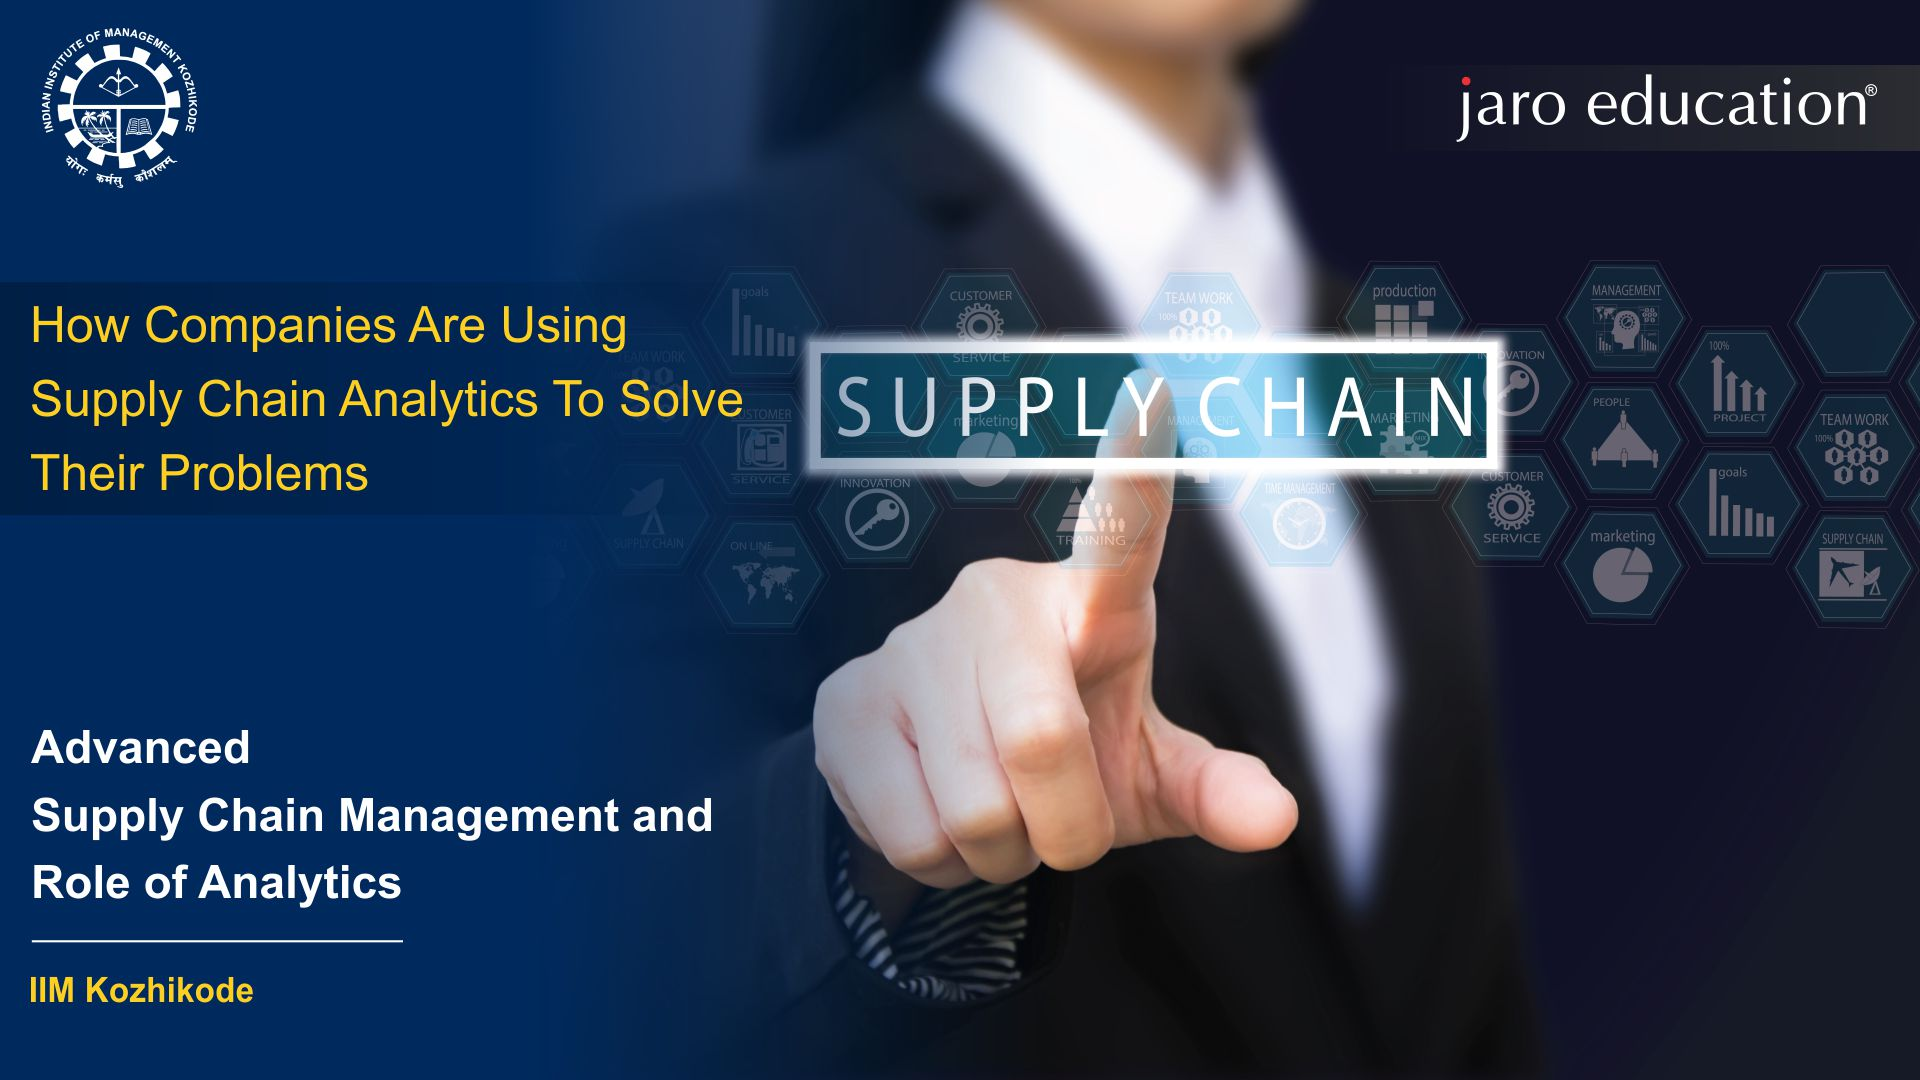 Supply Chain Analytics To Solve Their Problems